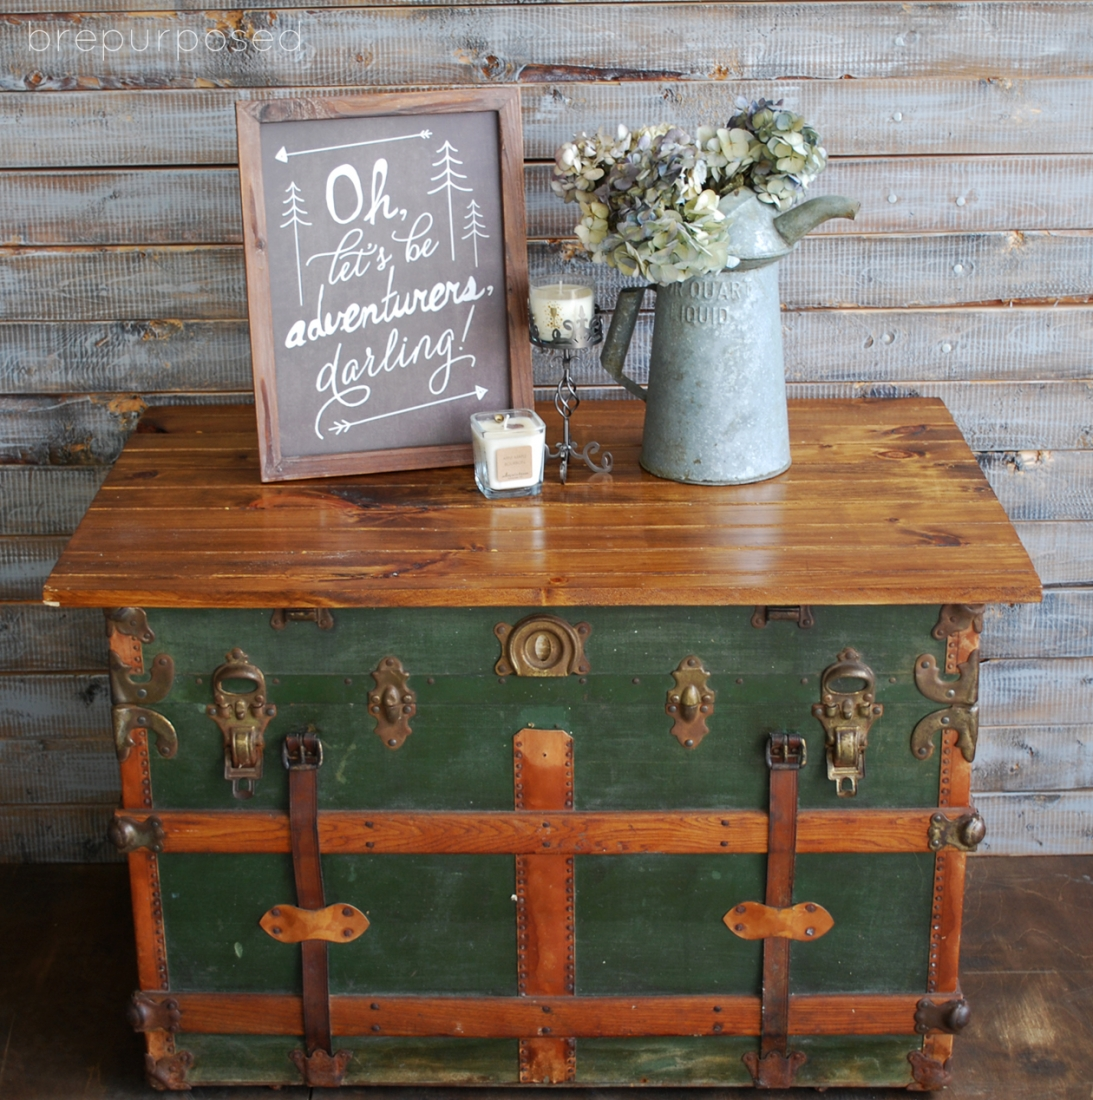 Antique Steamer Trunk Turned Coffee Table brepurposed